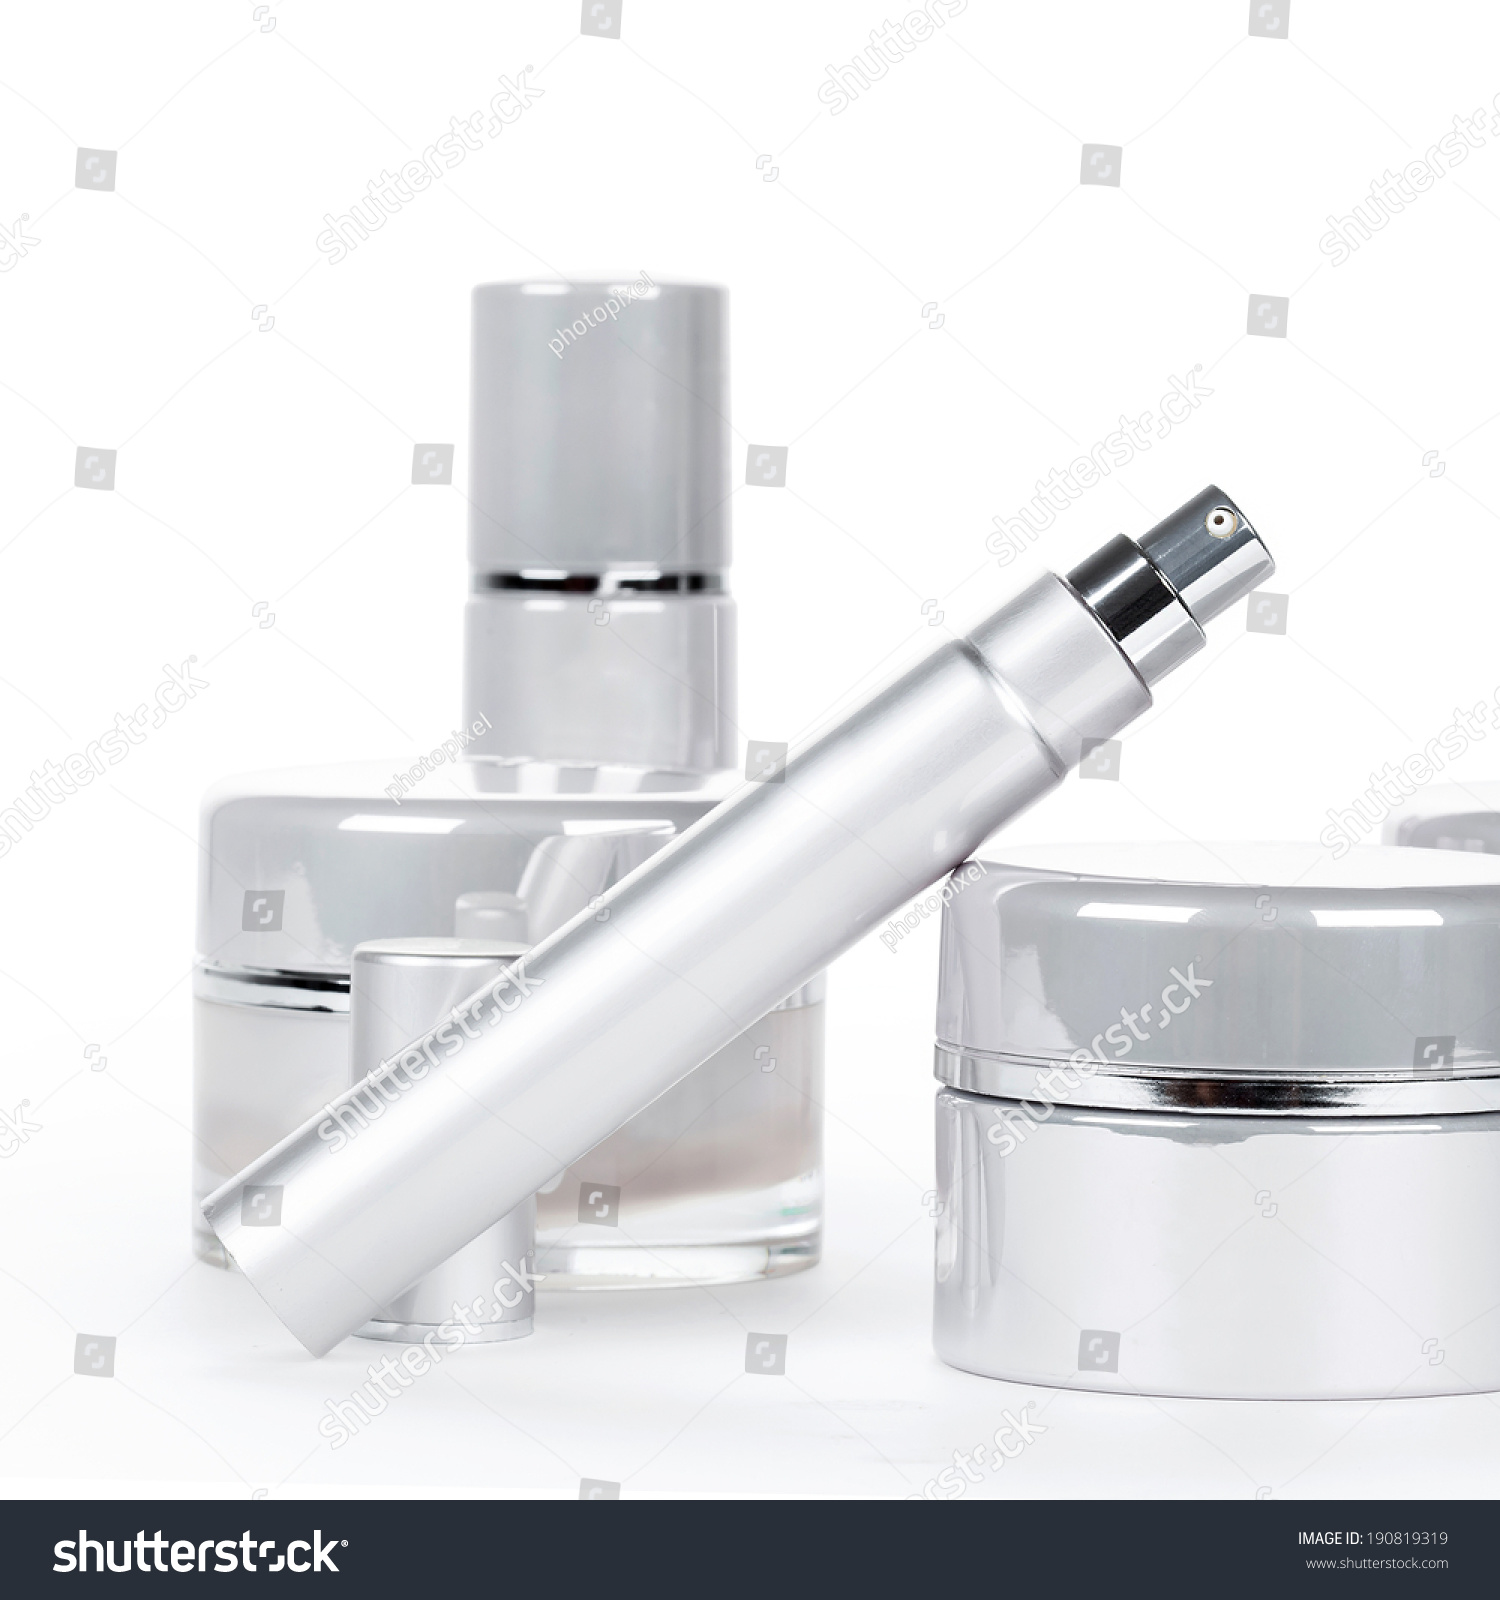 collection skincare spa products beauty concept stock photo 190819319 shutterstock. Black Bedroom Furniture Sets. Home Design Ideas